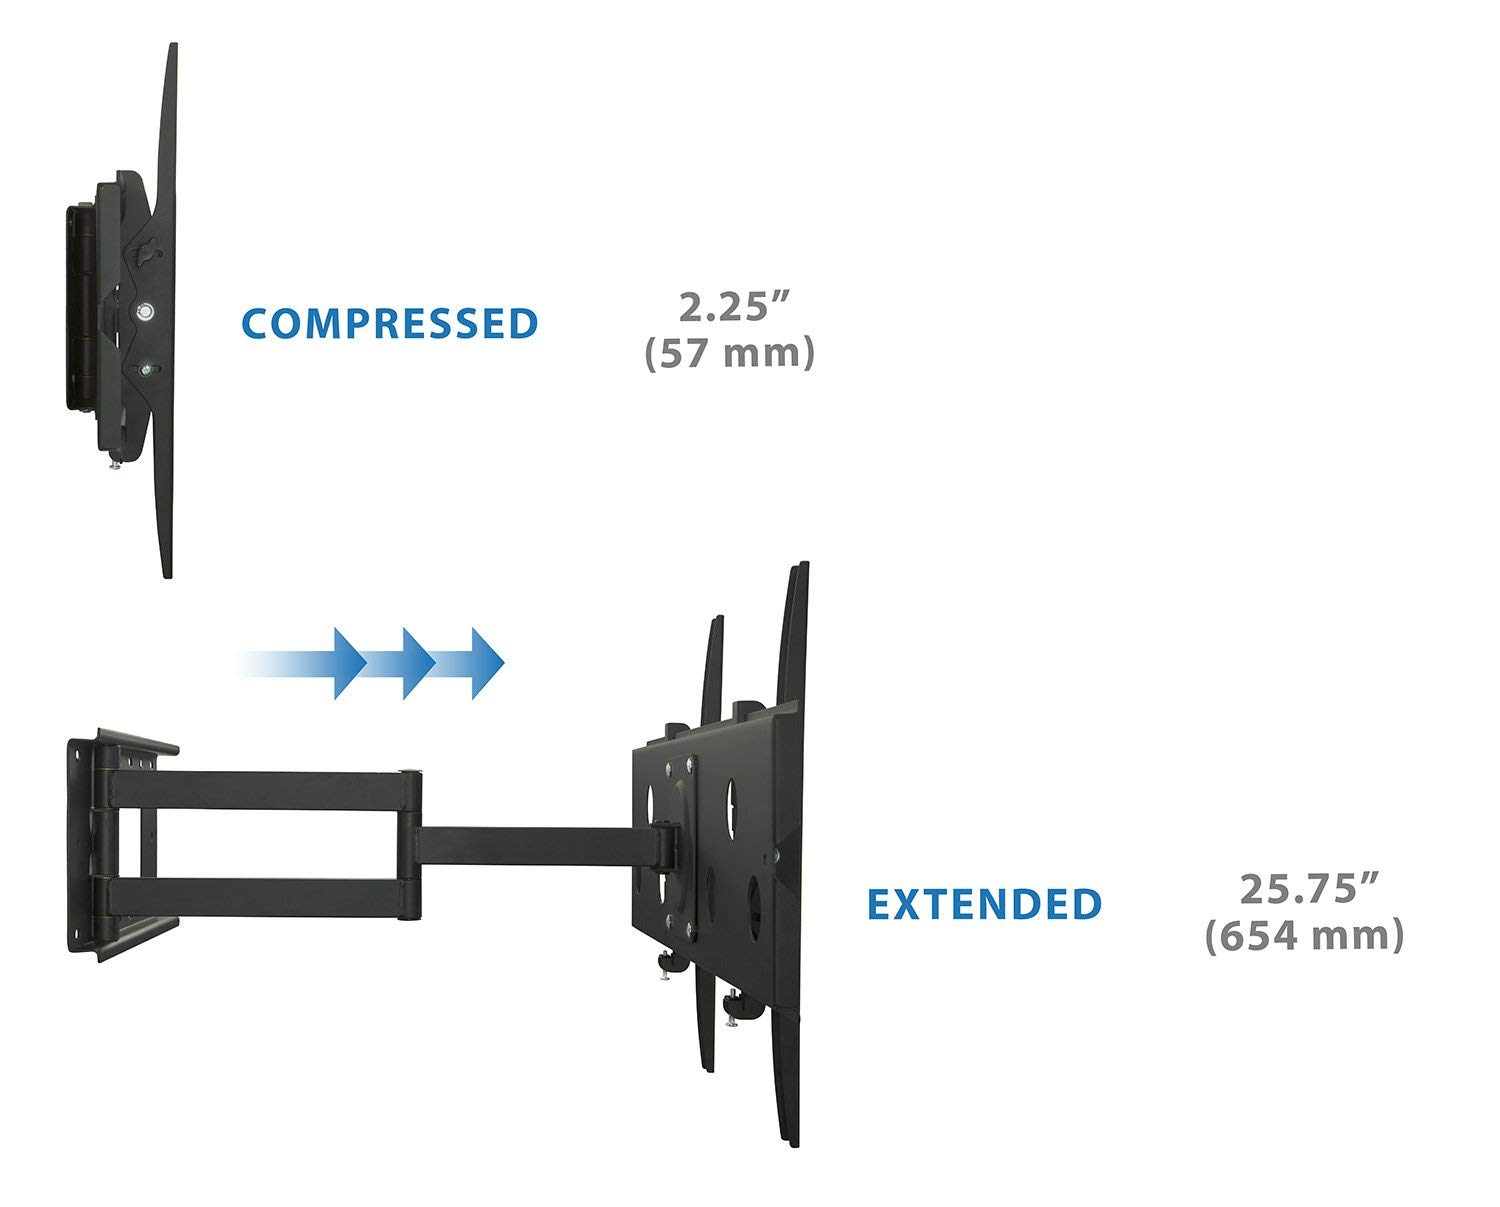 Mount-It! Long Arm TV Wall Mount With 26 Inch Extension, Swing Out Full Motion Design for Corner Installation, Fits 40 50, 55, 60, 65, 70 Inch Flat Screen TVs, 220 Pound Capacity by Everstone (Image #6)